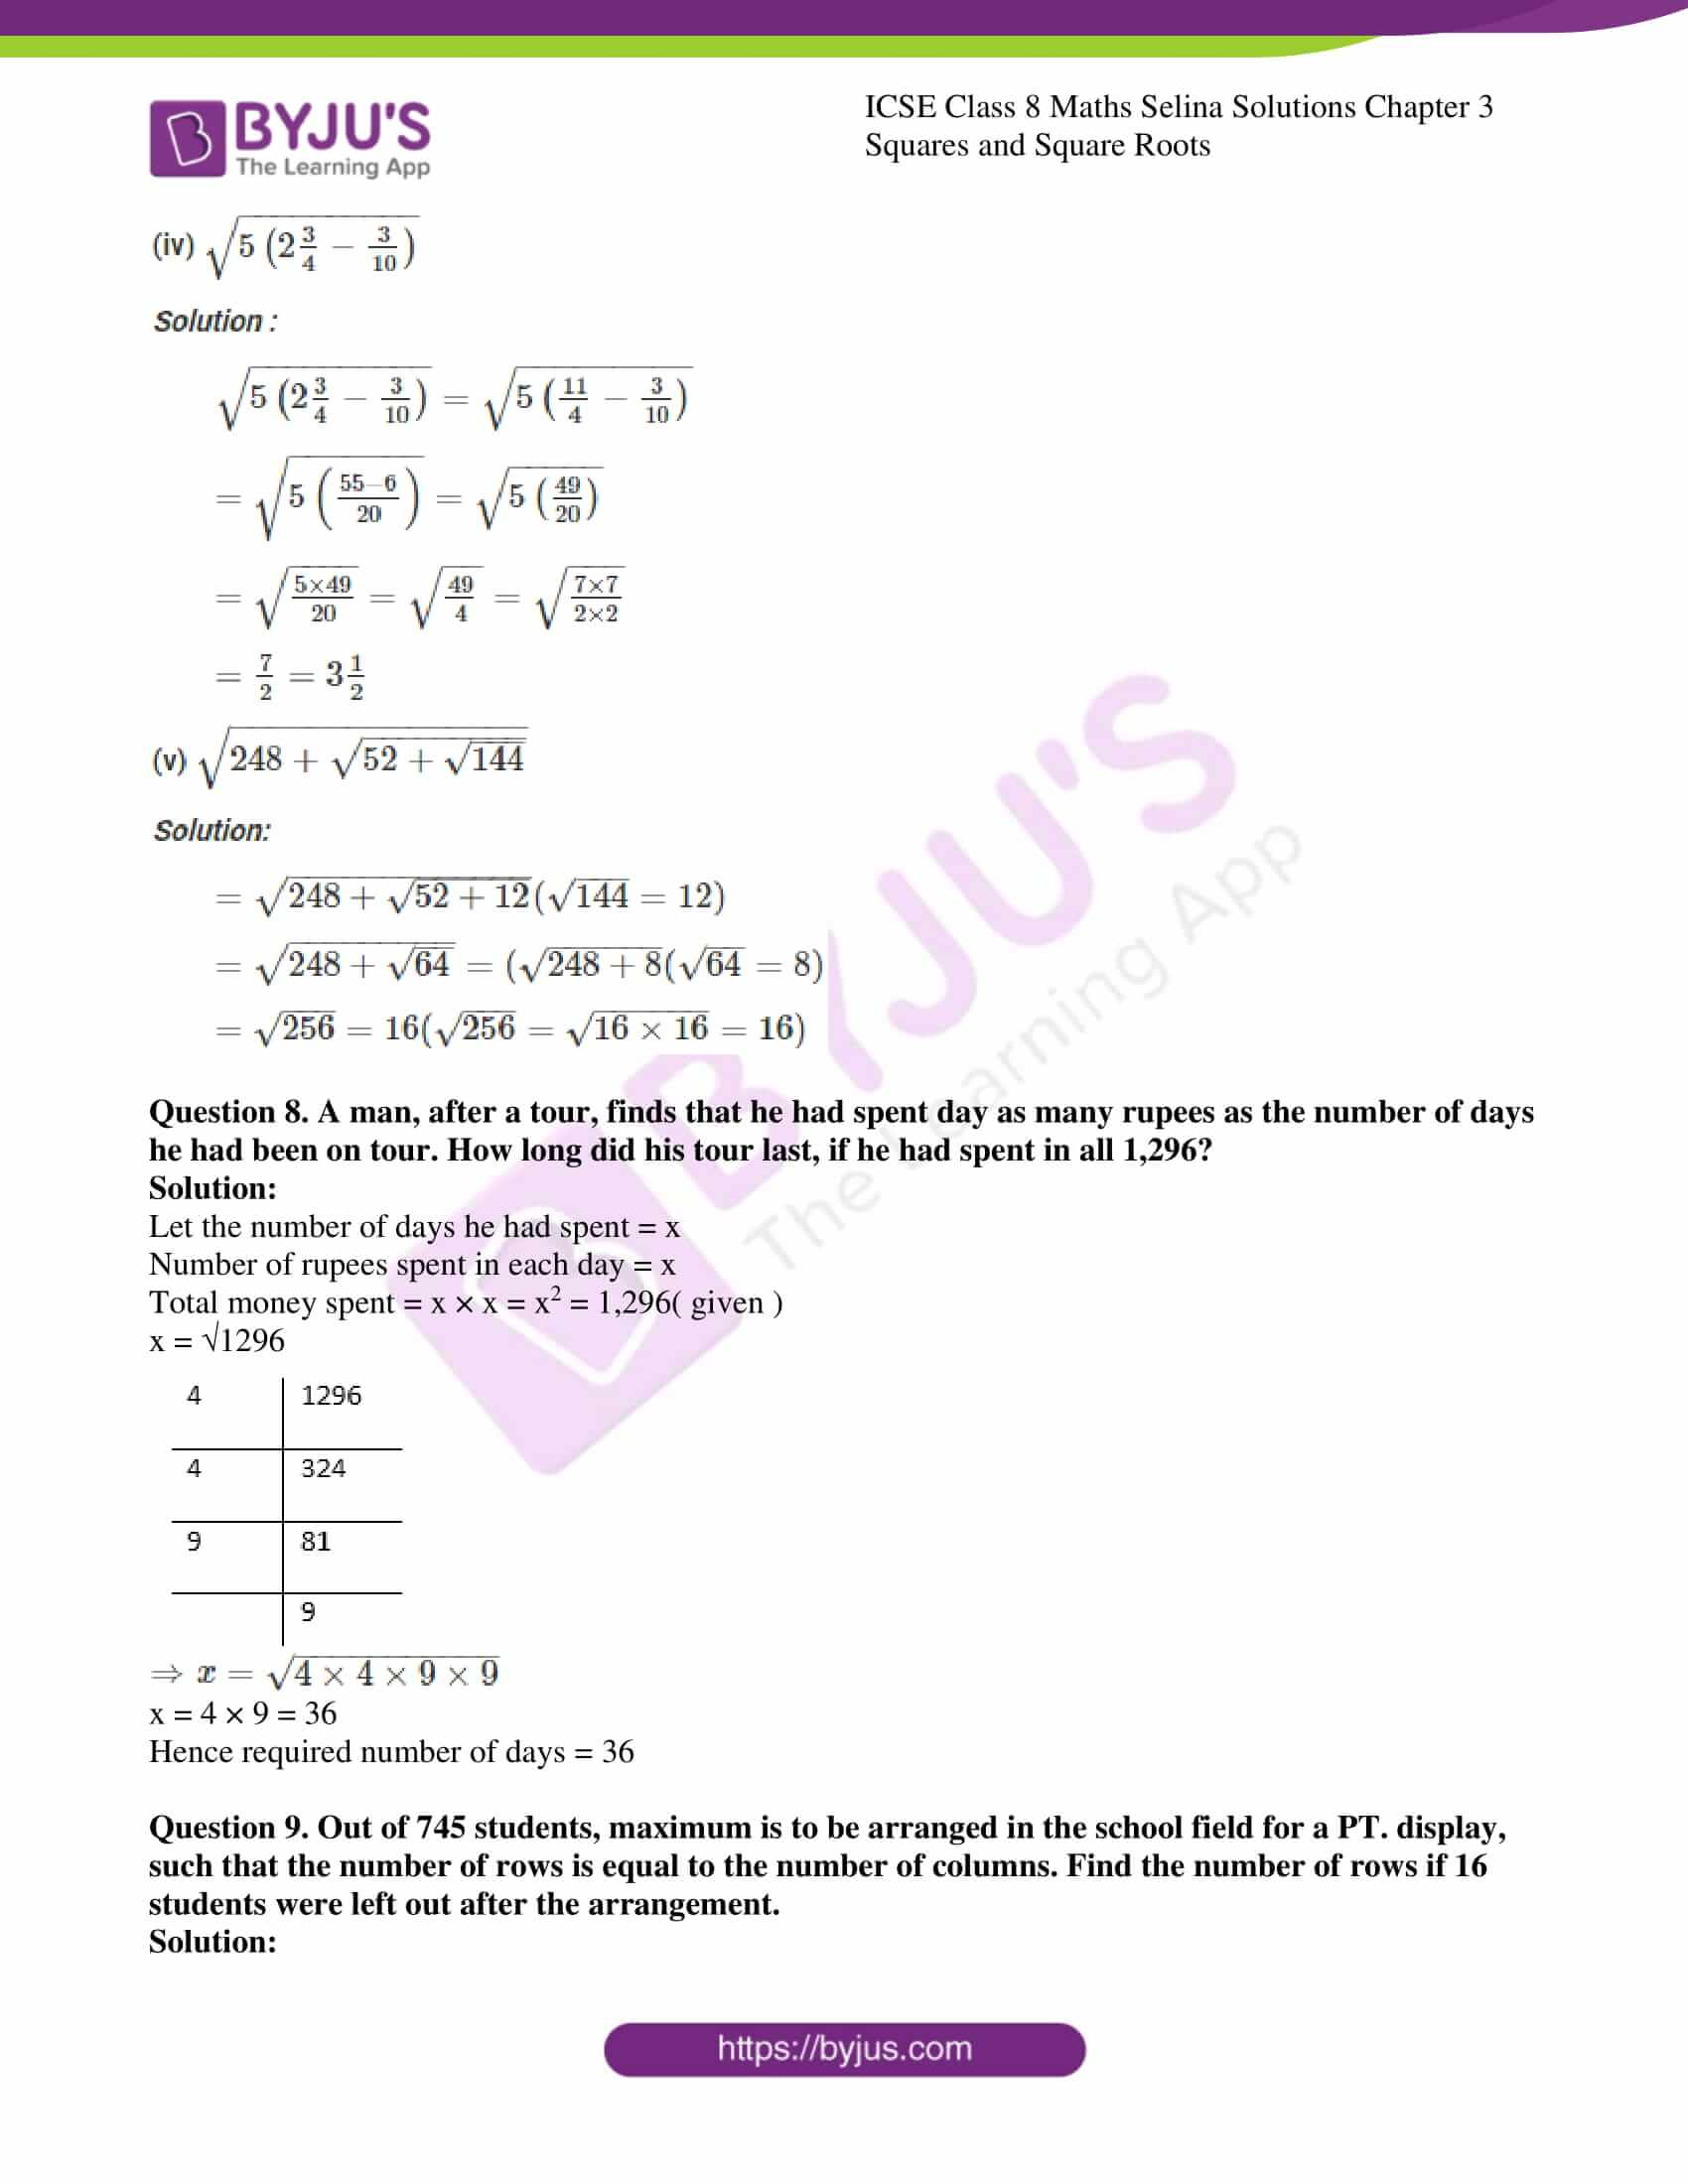 icse april7 class 8 maths selina solutions chapter 3 squares and square roots 06